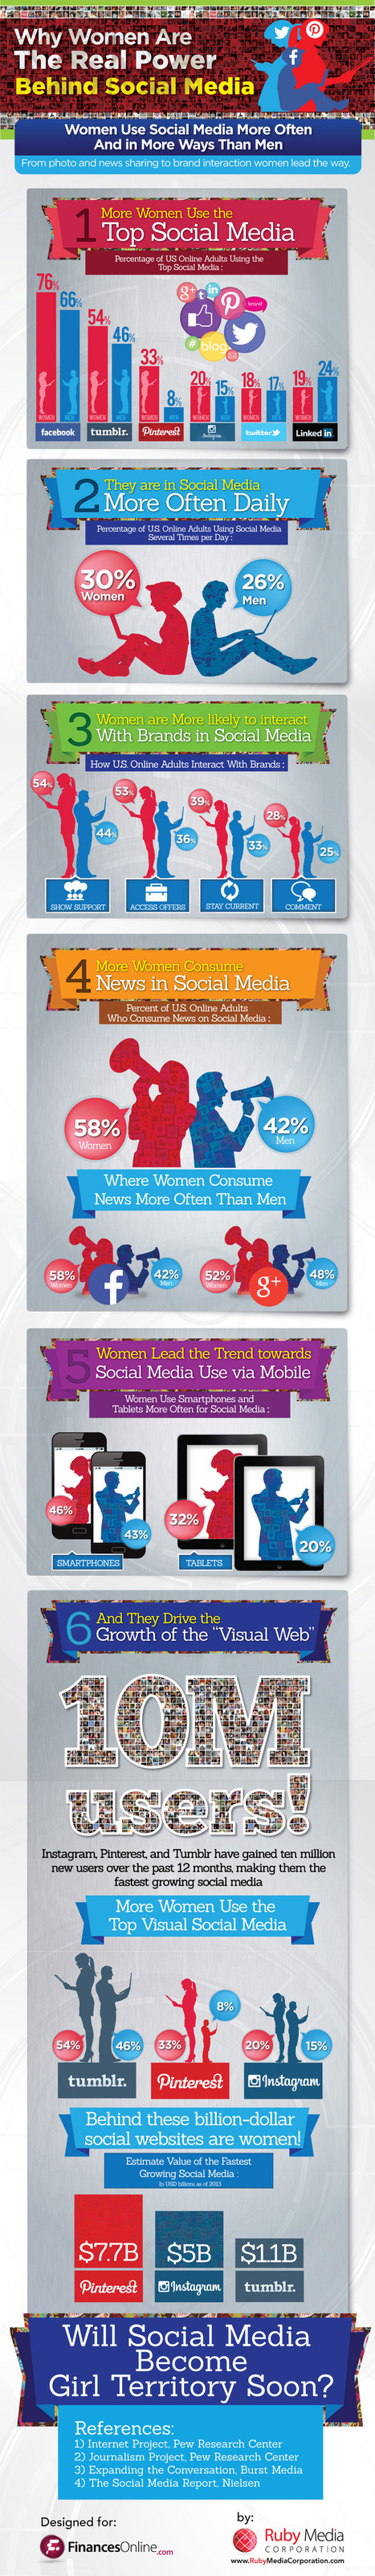 Why Women Are the Real Power Behind Social Media | Gender and social media | Scoop.it